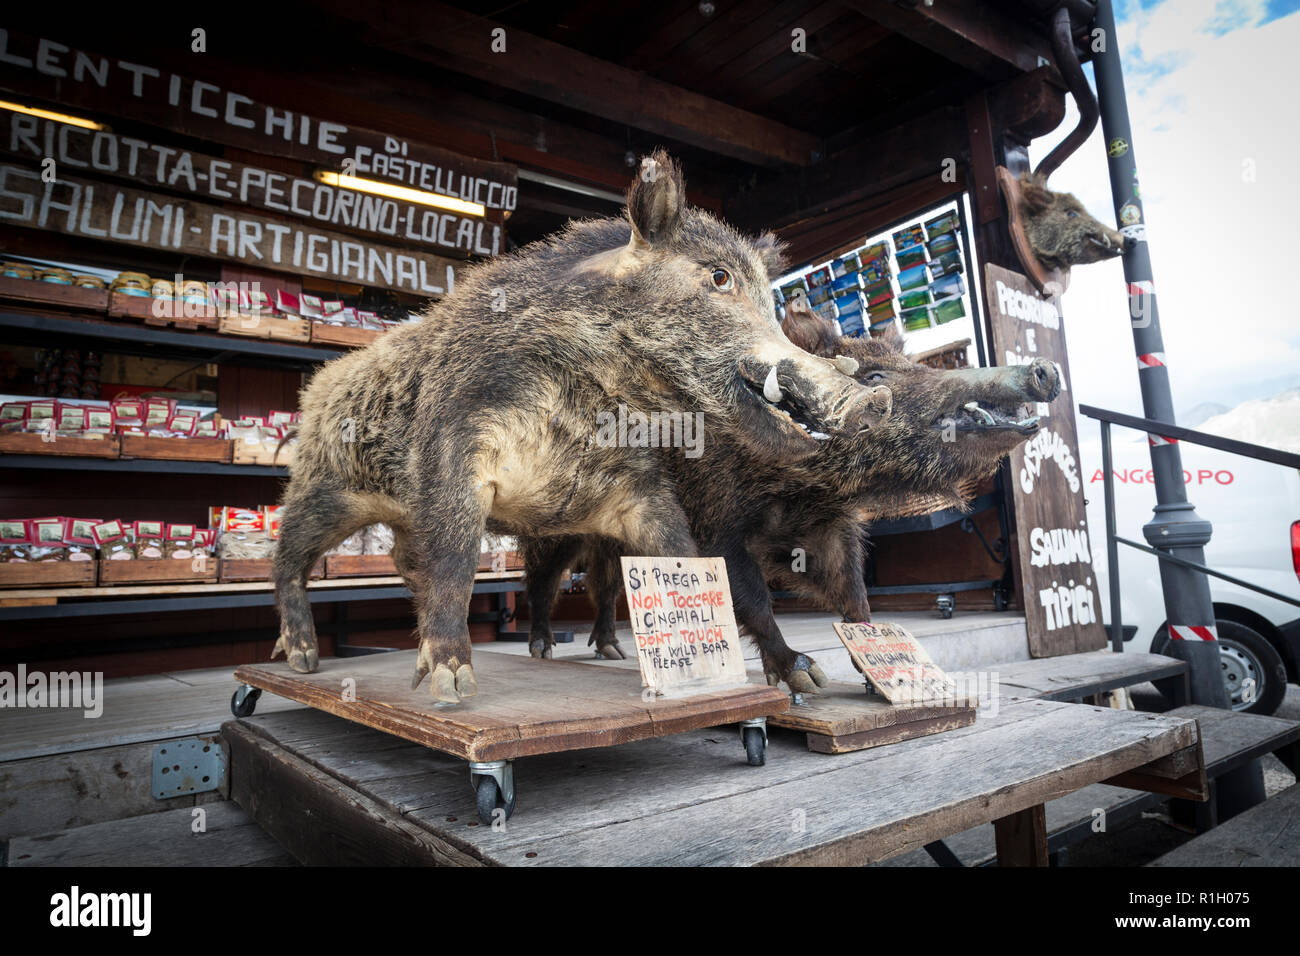 Stuffed wild boars used to advertise wild boar meat on a shop stall in Castelluccio in the Sibillini Mountains. - Stock Image